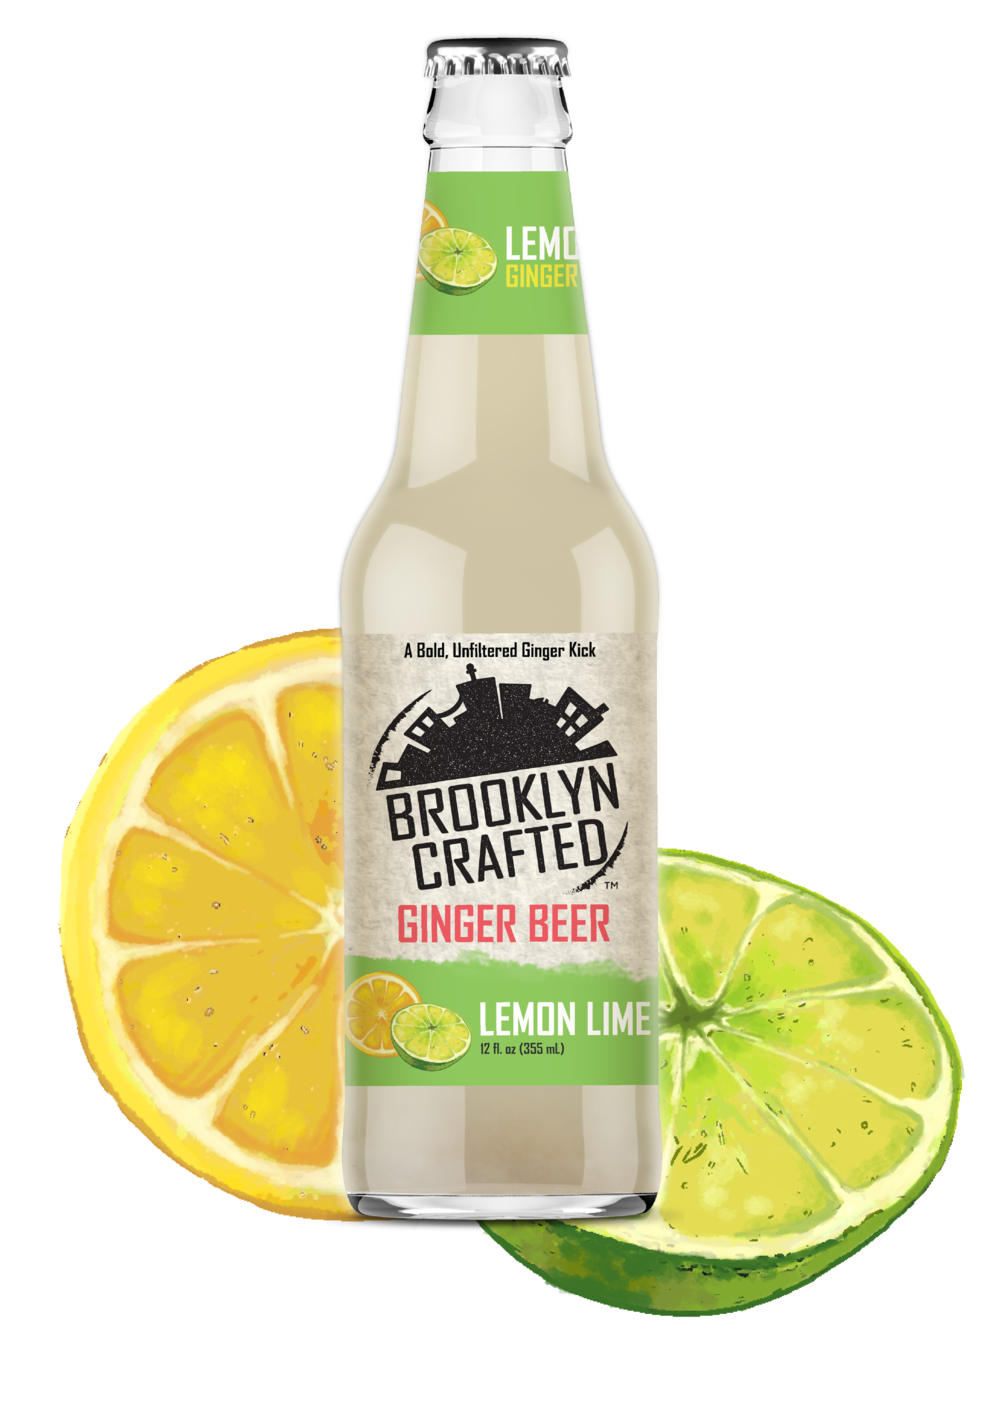 Lemon-lime-product-01.png